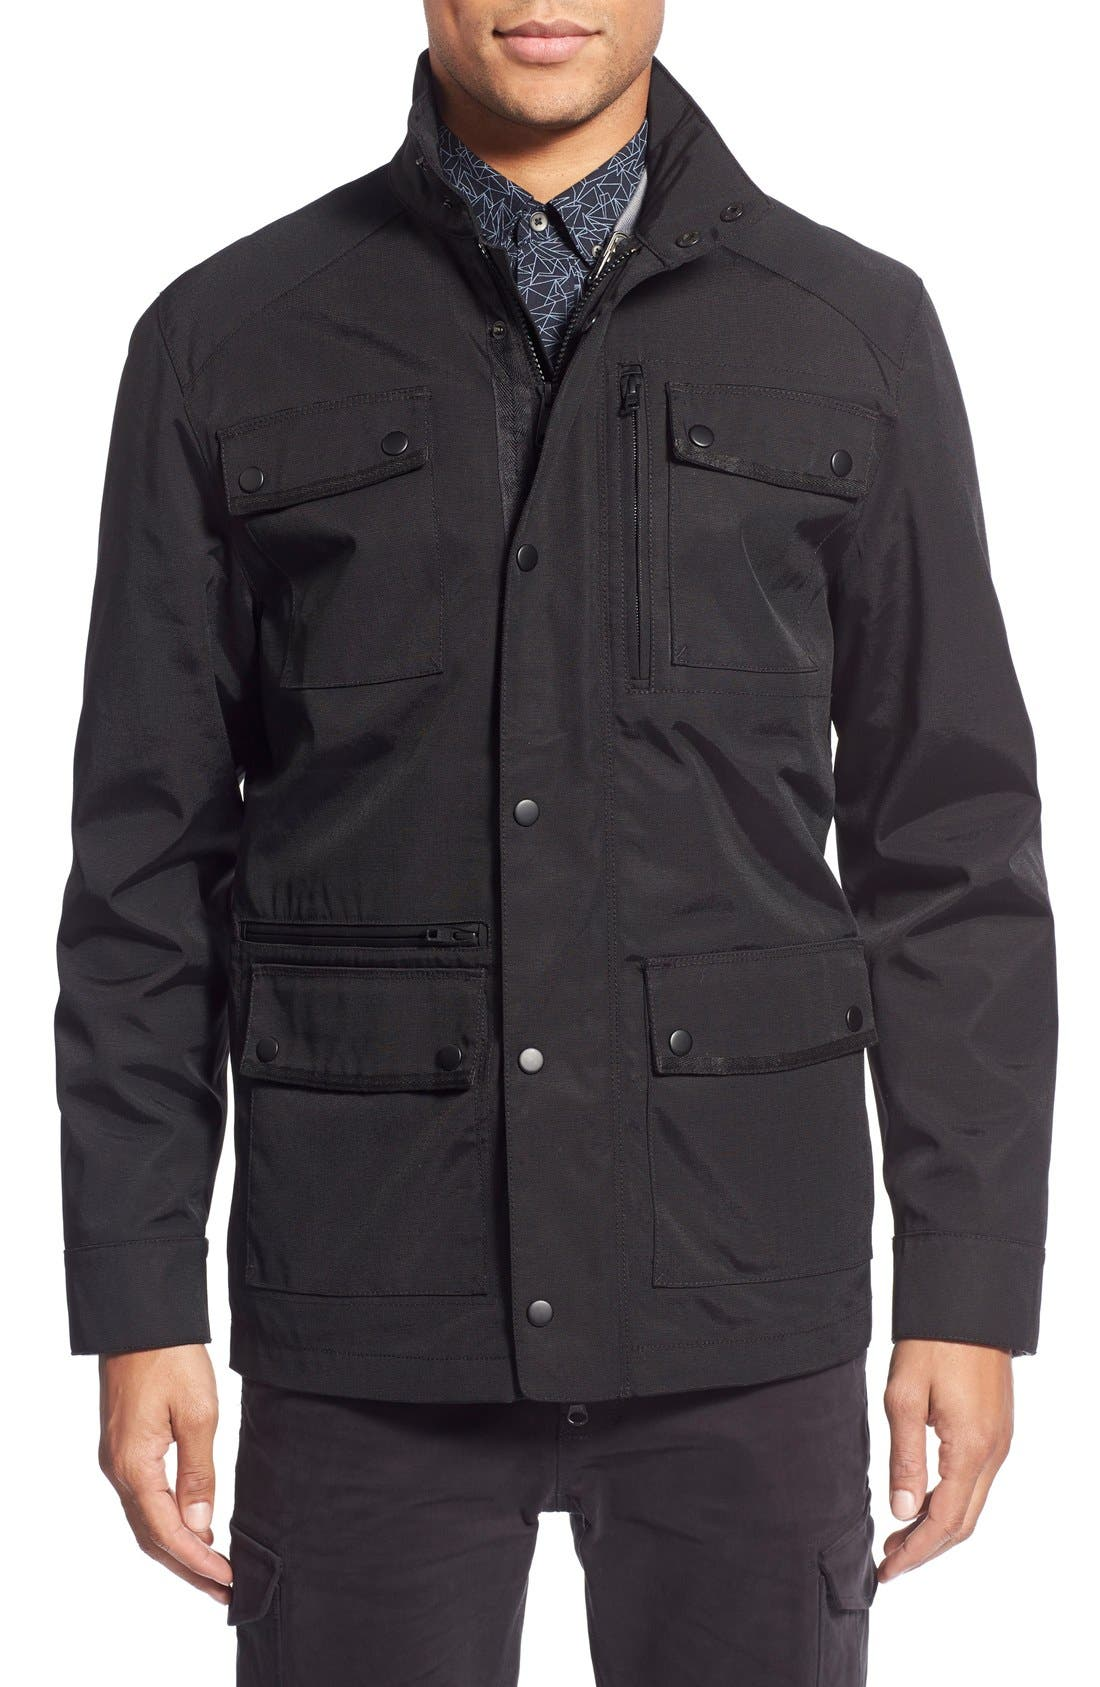 'Ethan' 3-in-1 Field Jacket,                         Main,                         color, Black